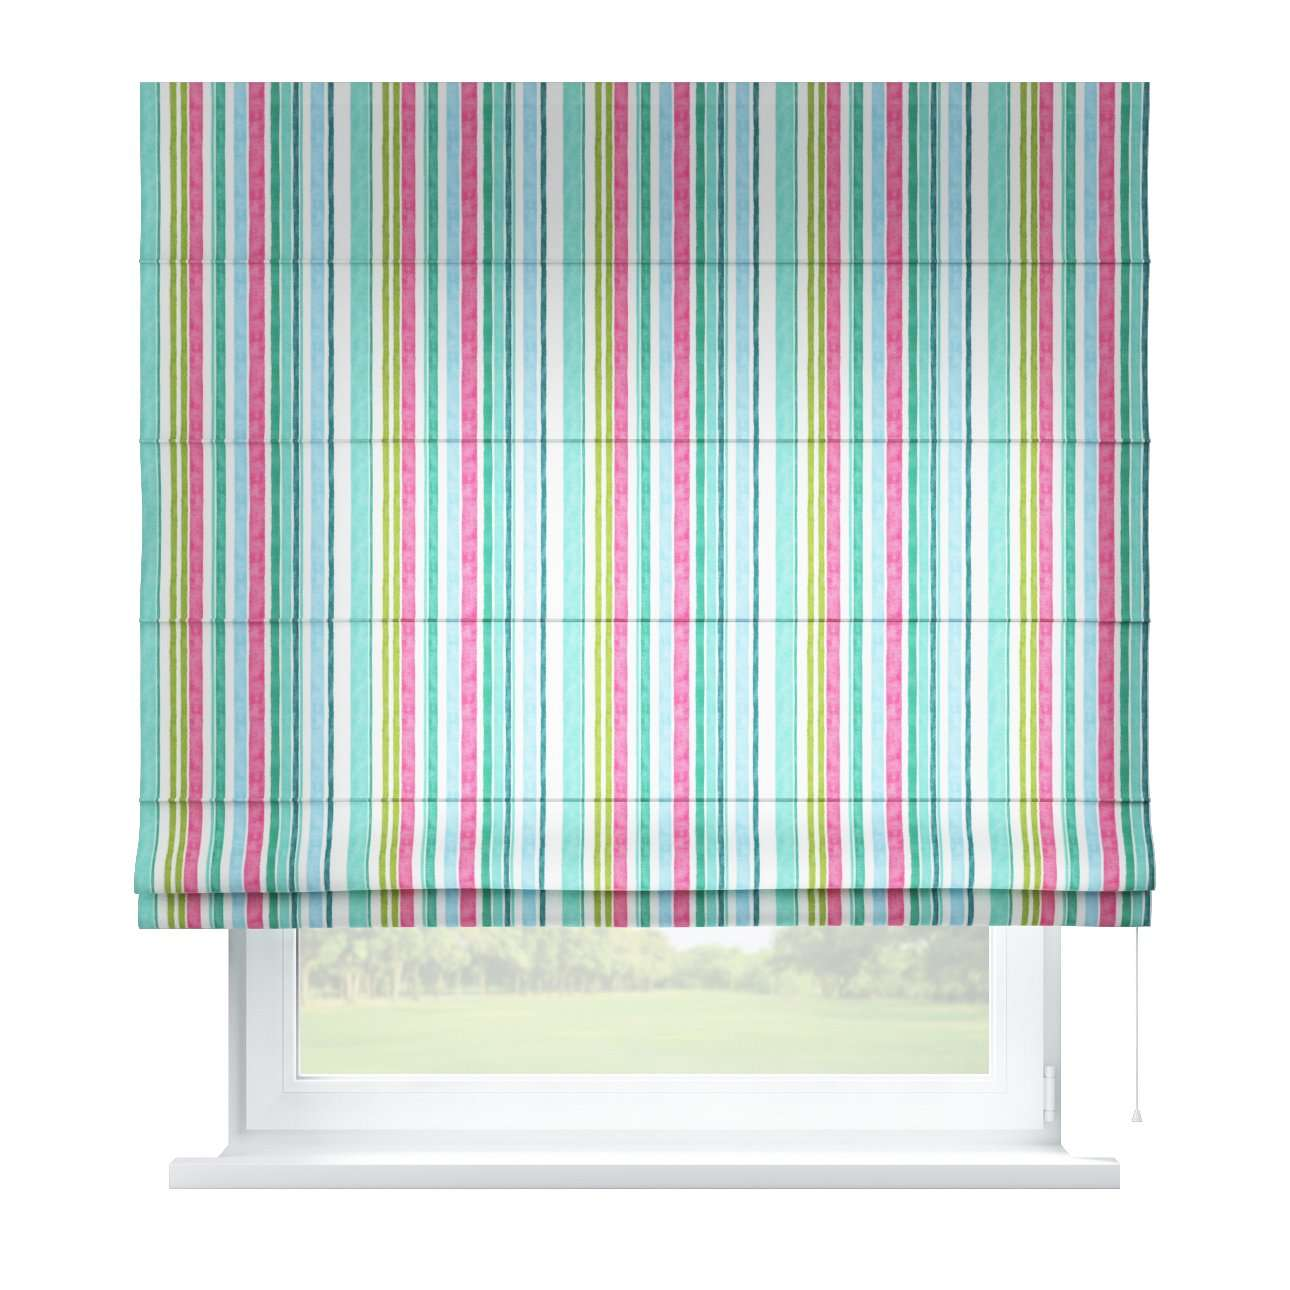 Capri roman blind 80 x 170 cm (31.5 x 67 inch) in collection Monet, fabric: 140-03